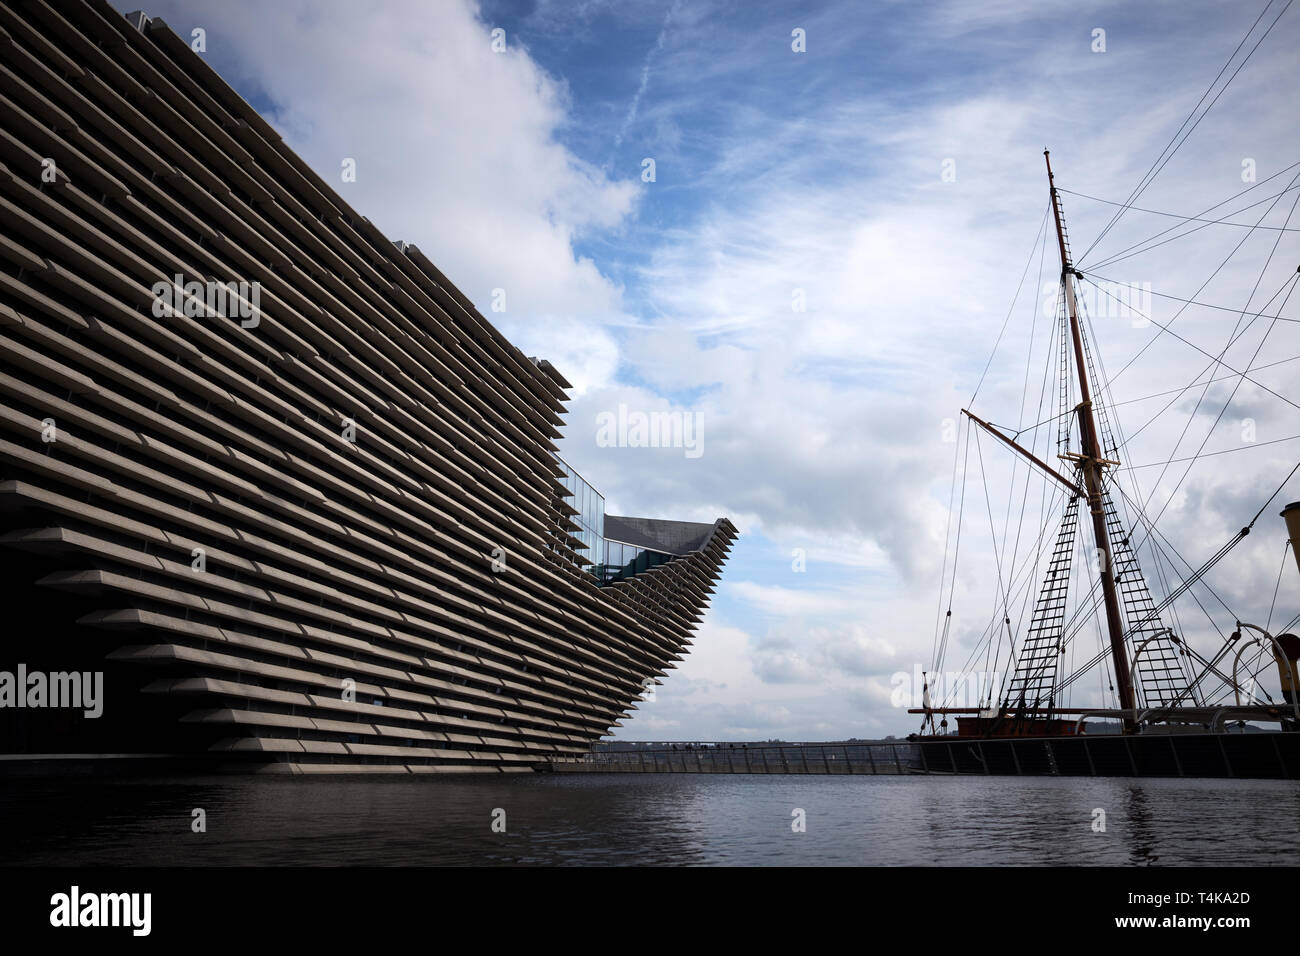 The exterior of the Victoria & Albert Museum in Dundee, Scotland next to the RRS Discovery wooden auxiliary steam ship. - Stock Image